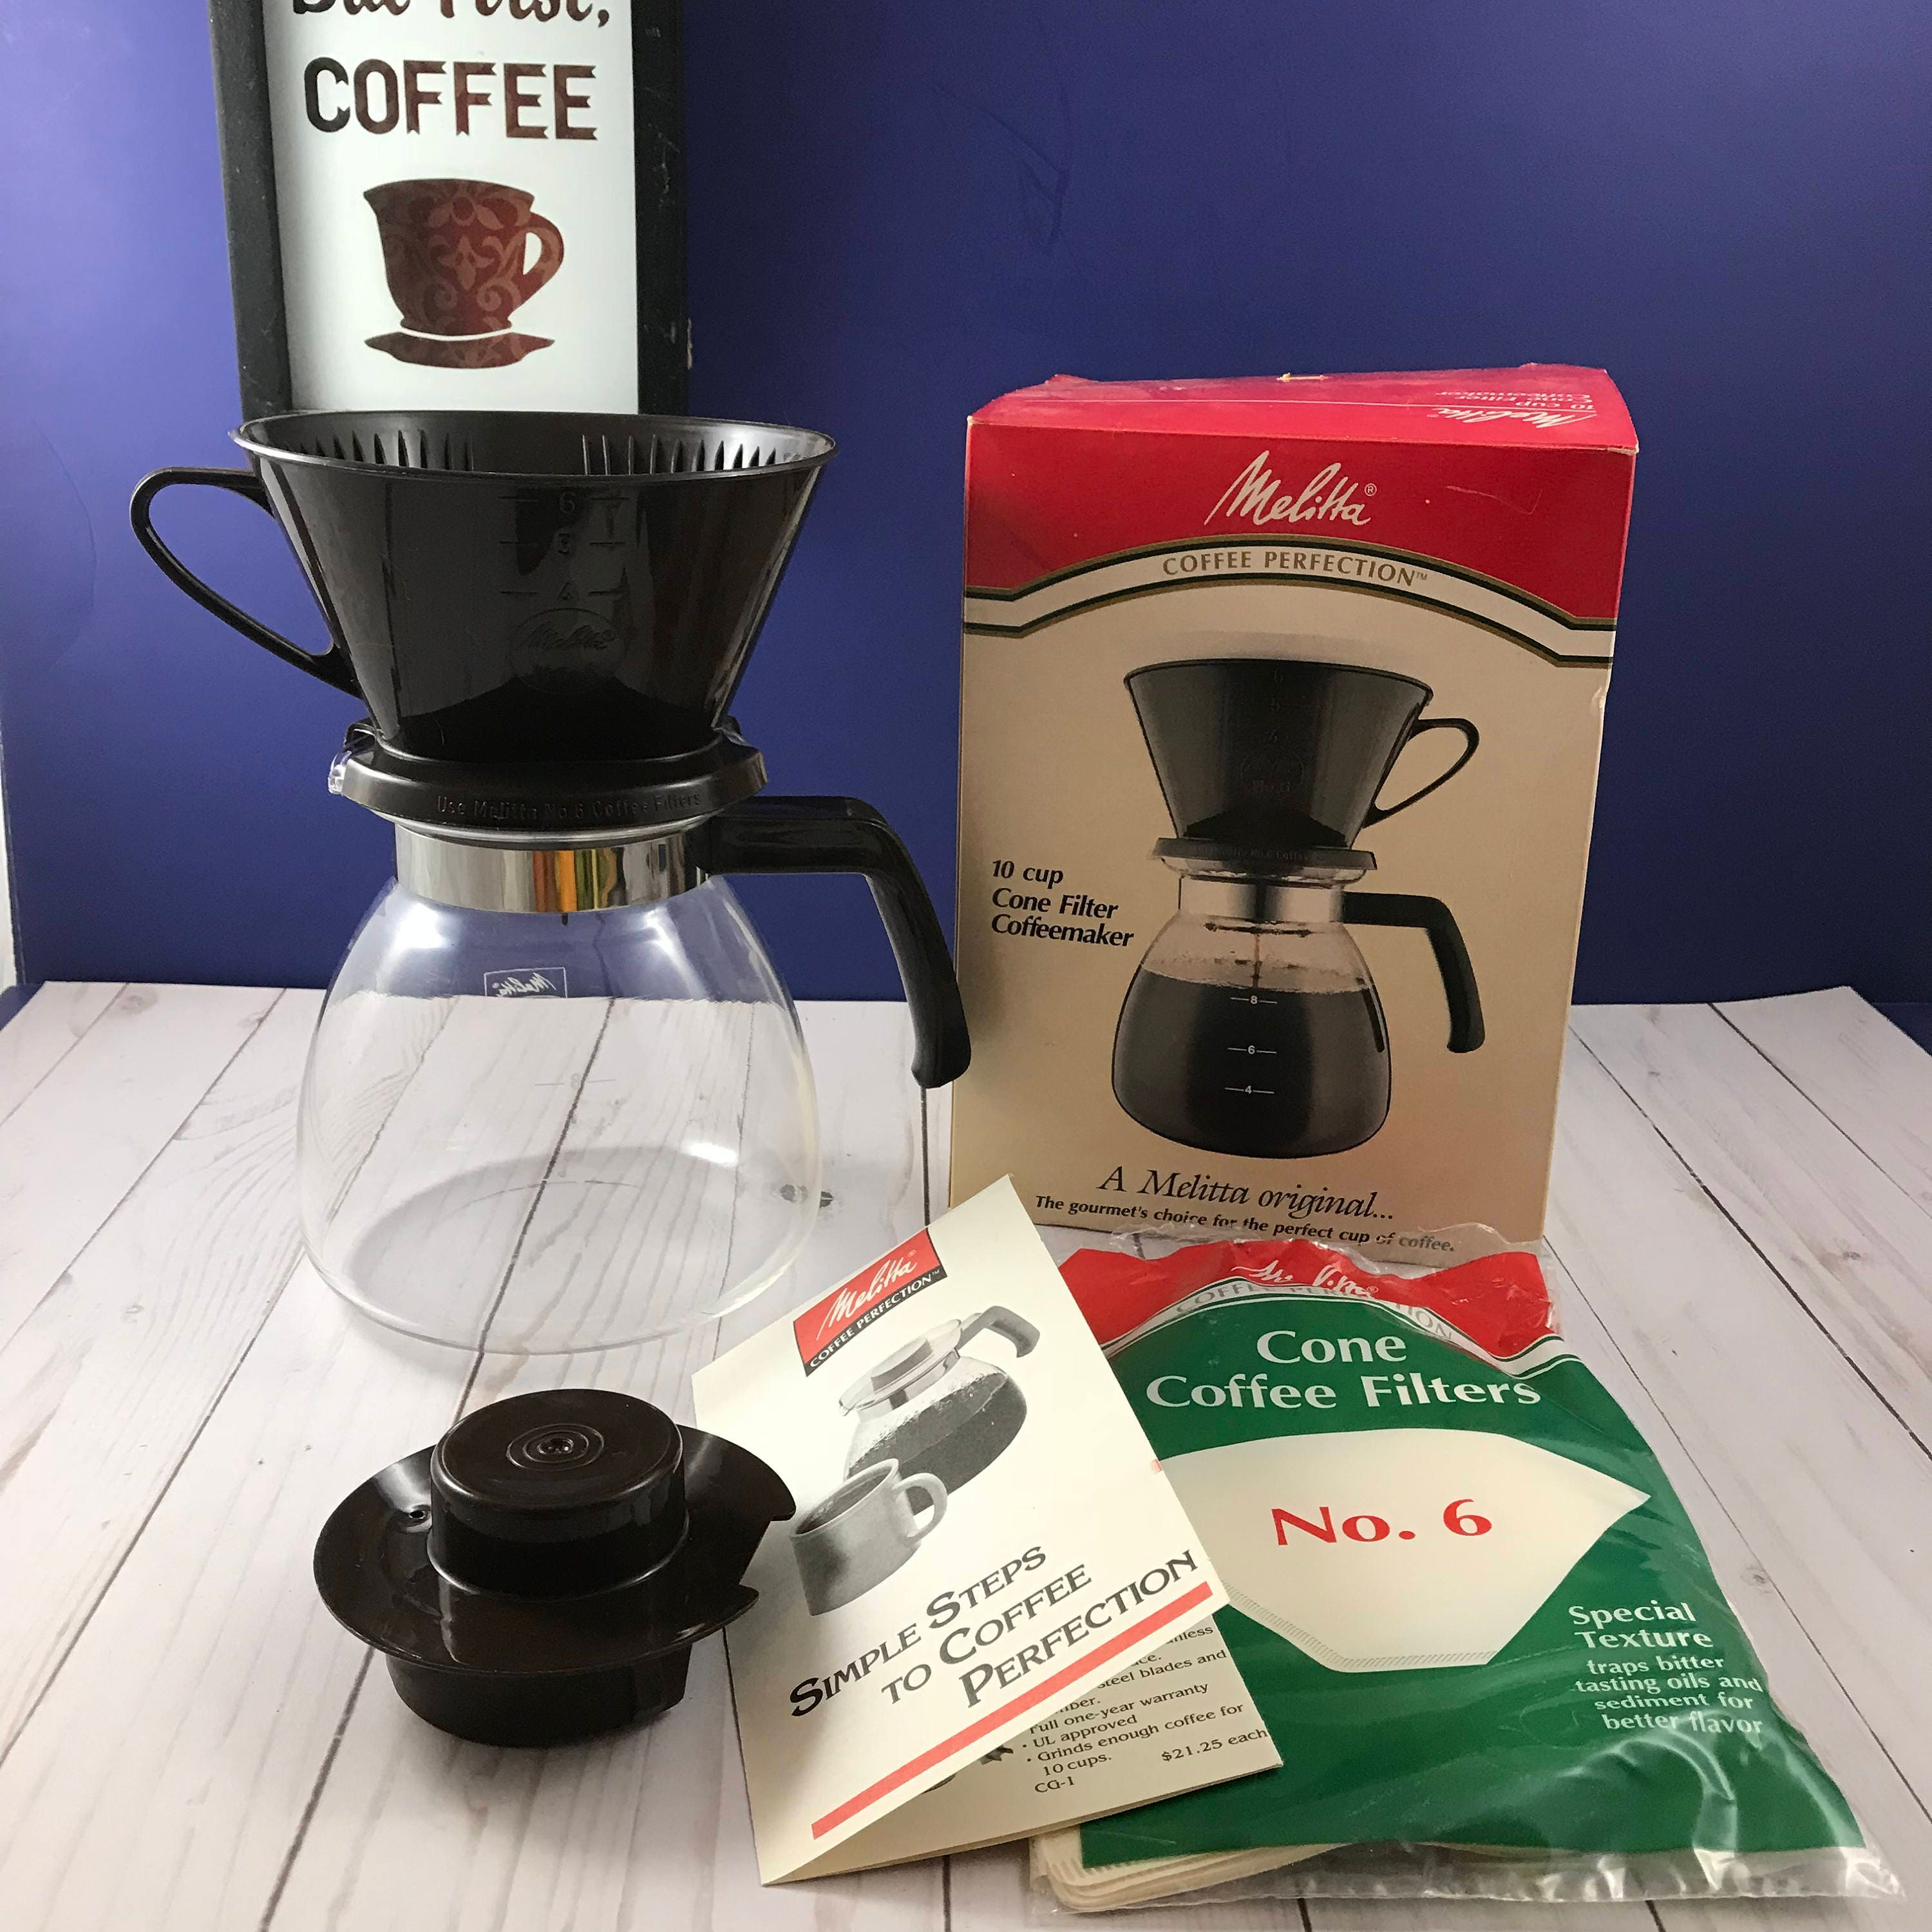 melitta cone filter pour over coffee maker 10 cup pot carafe manual drip coffee dripper. Black Bedroom Furniture Sets. Home Design Ideas